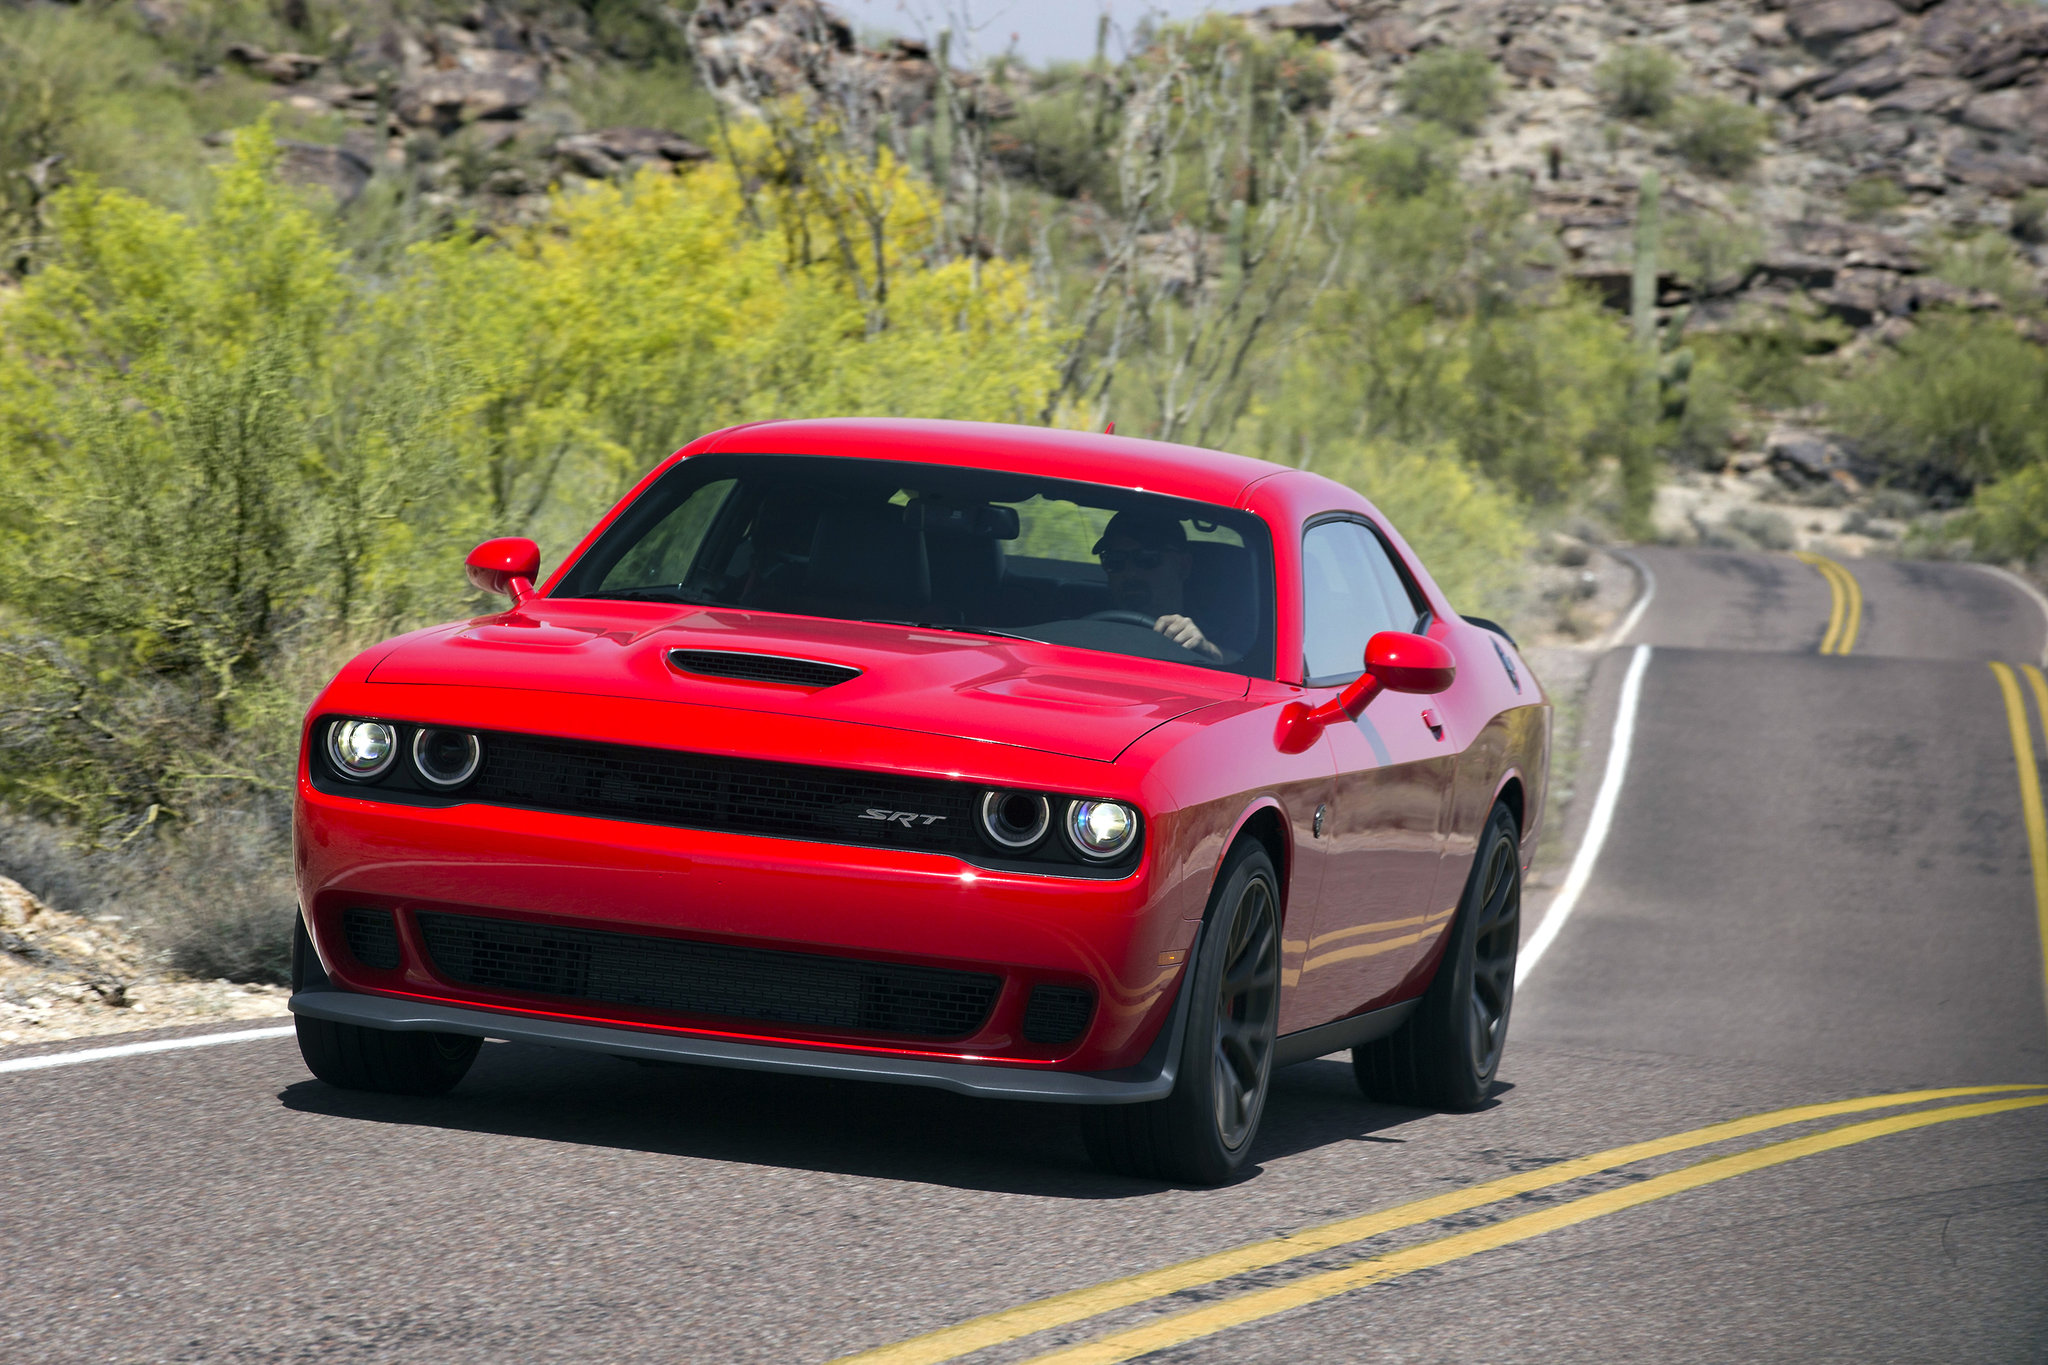 Fca recalls 2017 challenger chargers with hellcat engines due to hose issue mlive com